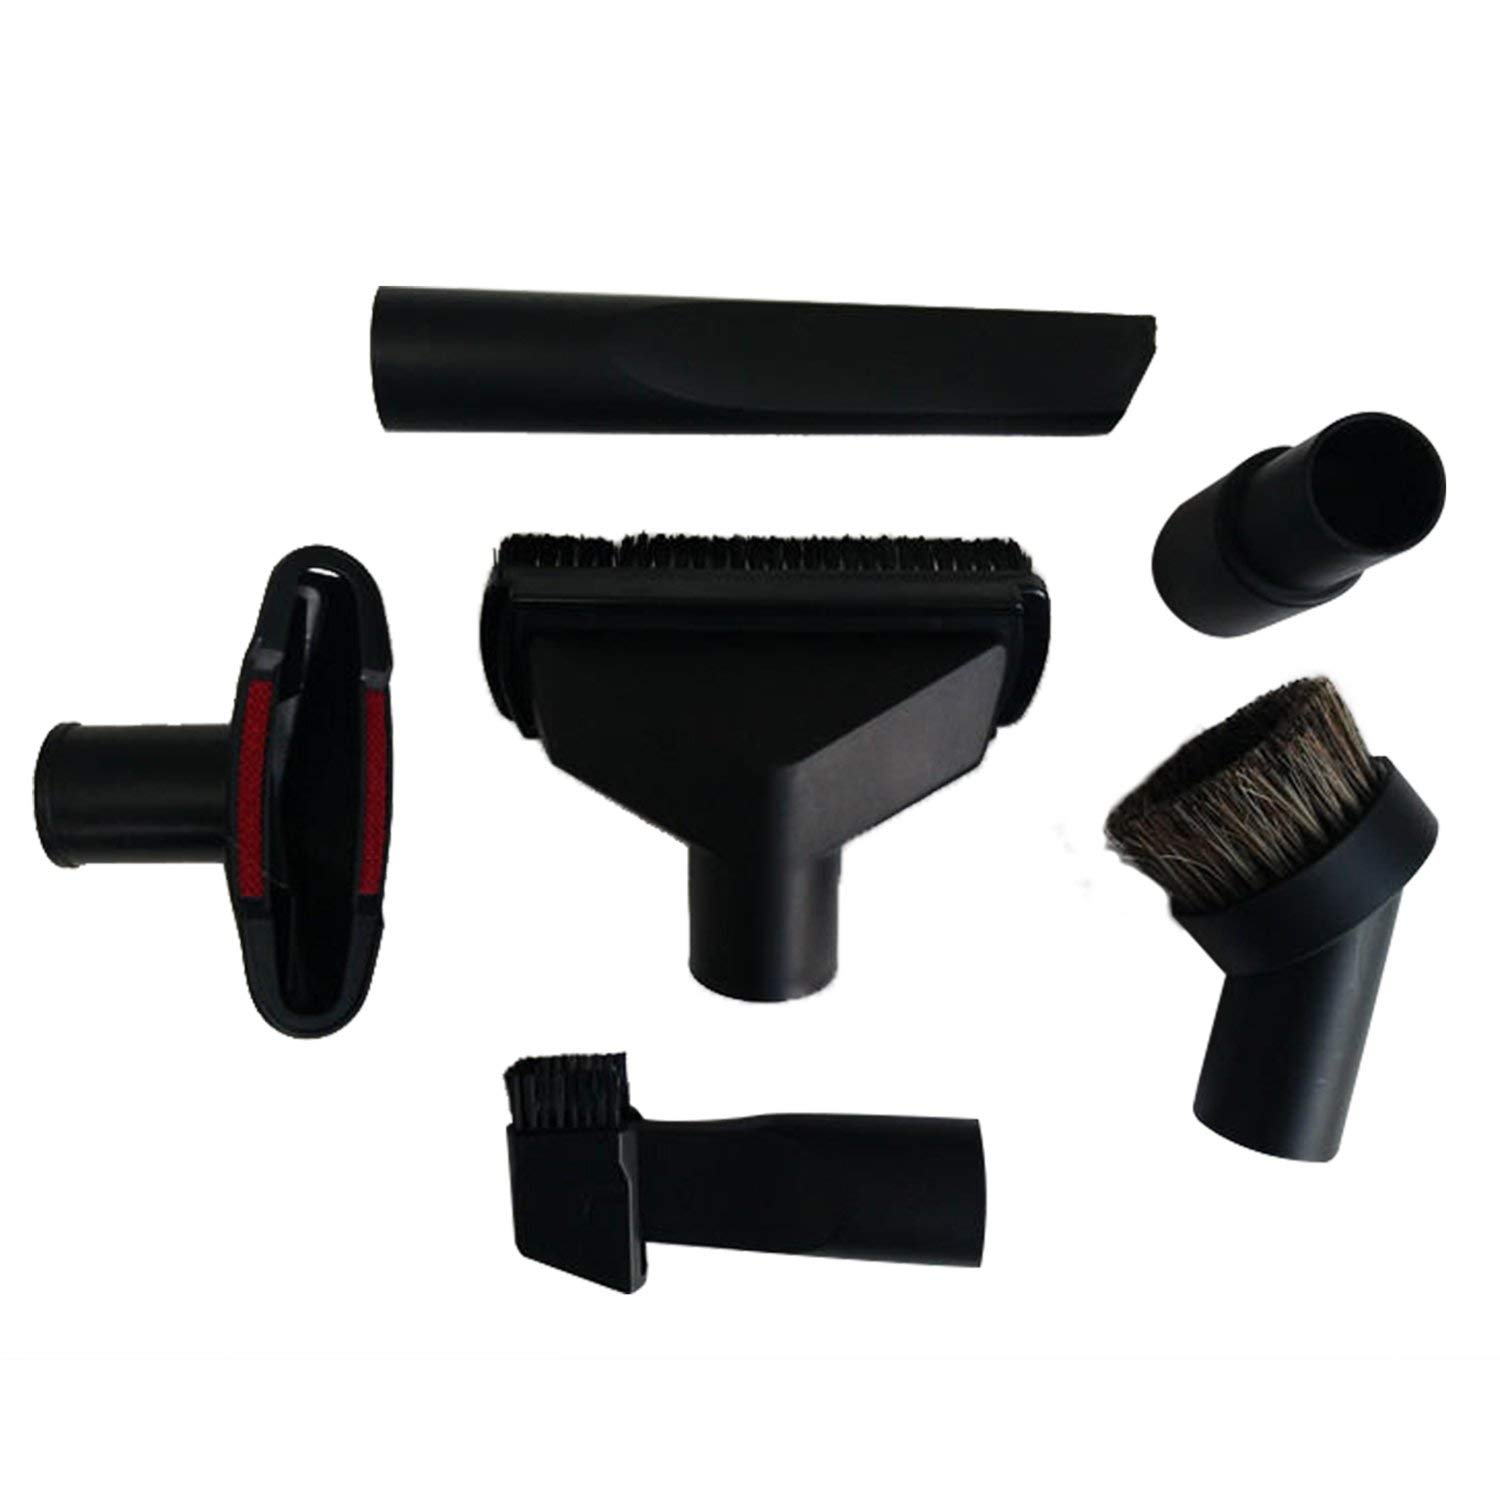 Toogoo Universal Vacuum Cleaner Accessories Cleaning Kit Brush Nozzle Crevice Tool for 32mm& 35mm Standard Hose 6pcs